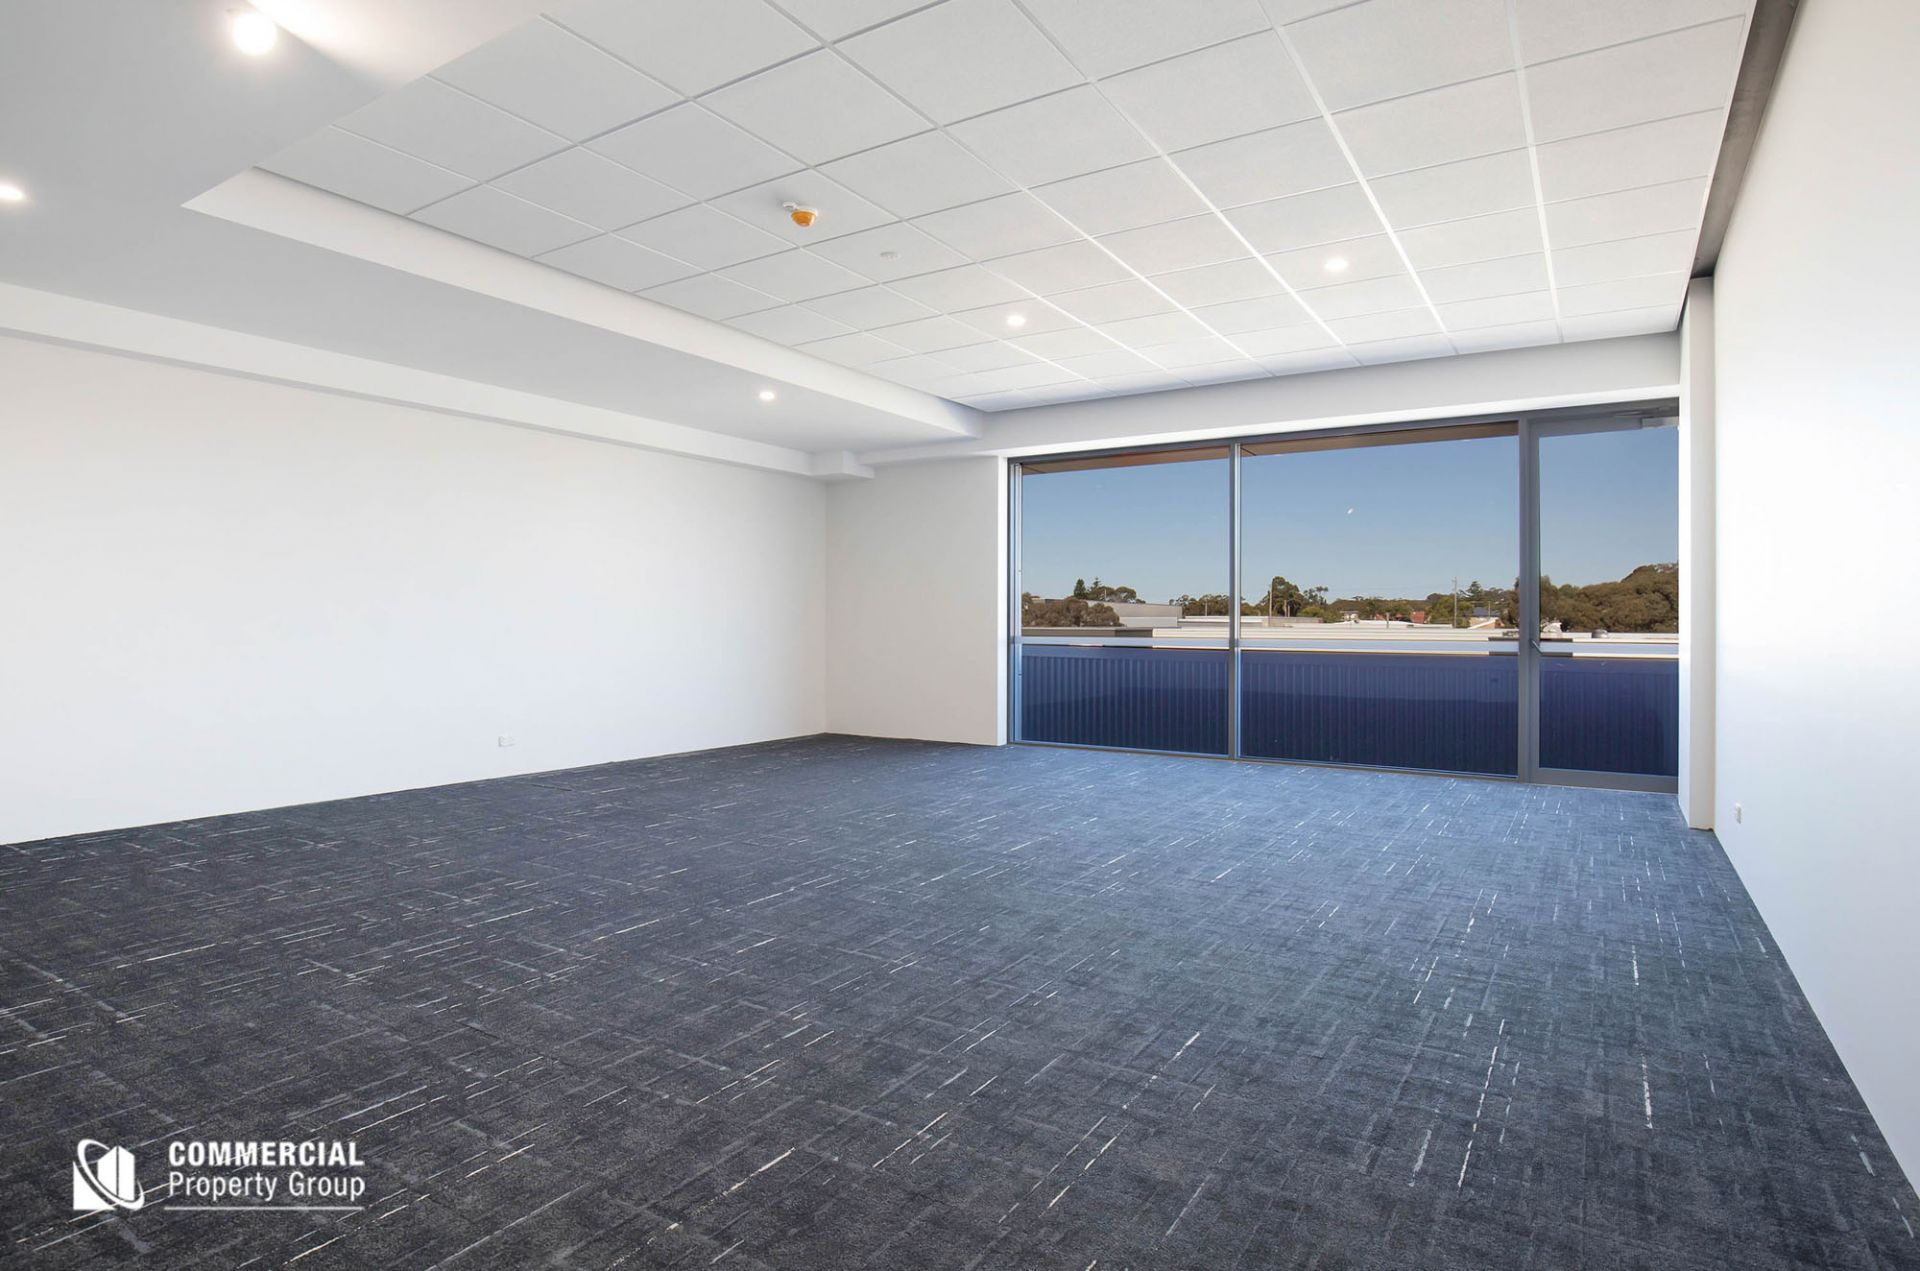 GROW YOUR BUSINESS, NOT YOUR COMMUTE - OFFICE SPACES AVAILABLE FOR LEASE